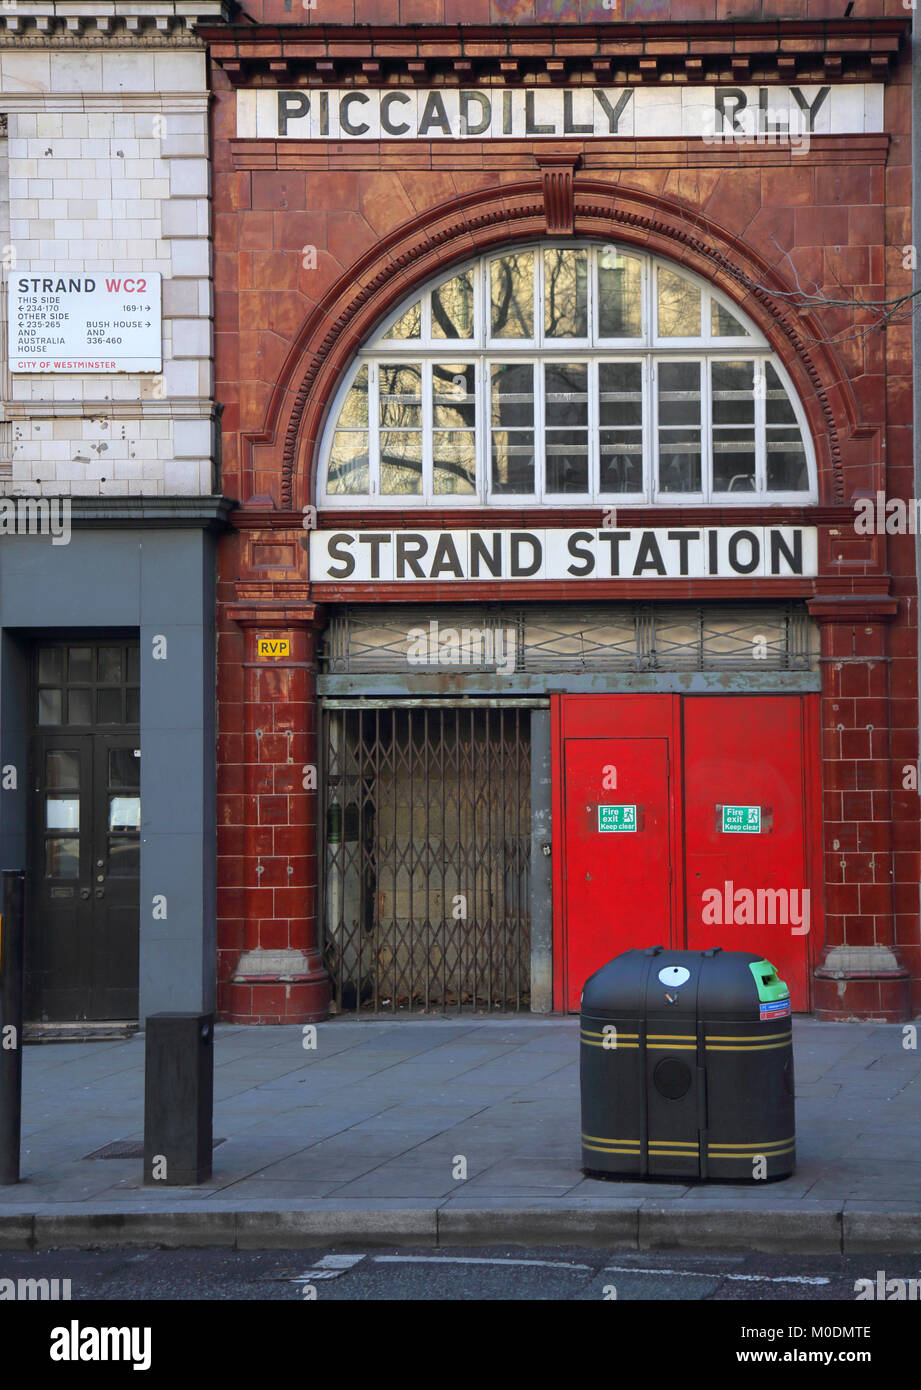 strand station and the piccadilly railway london - Stock Image